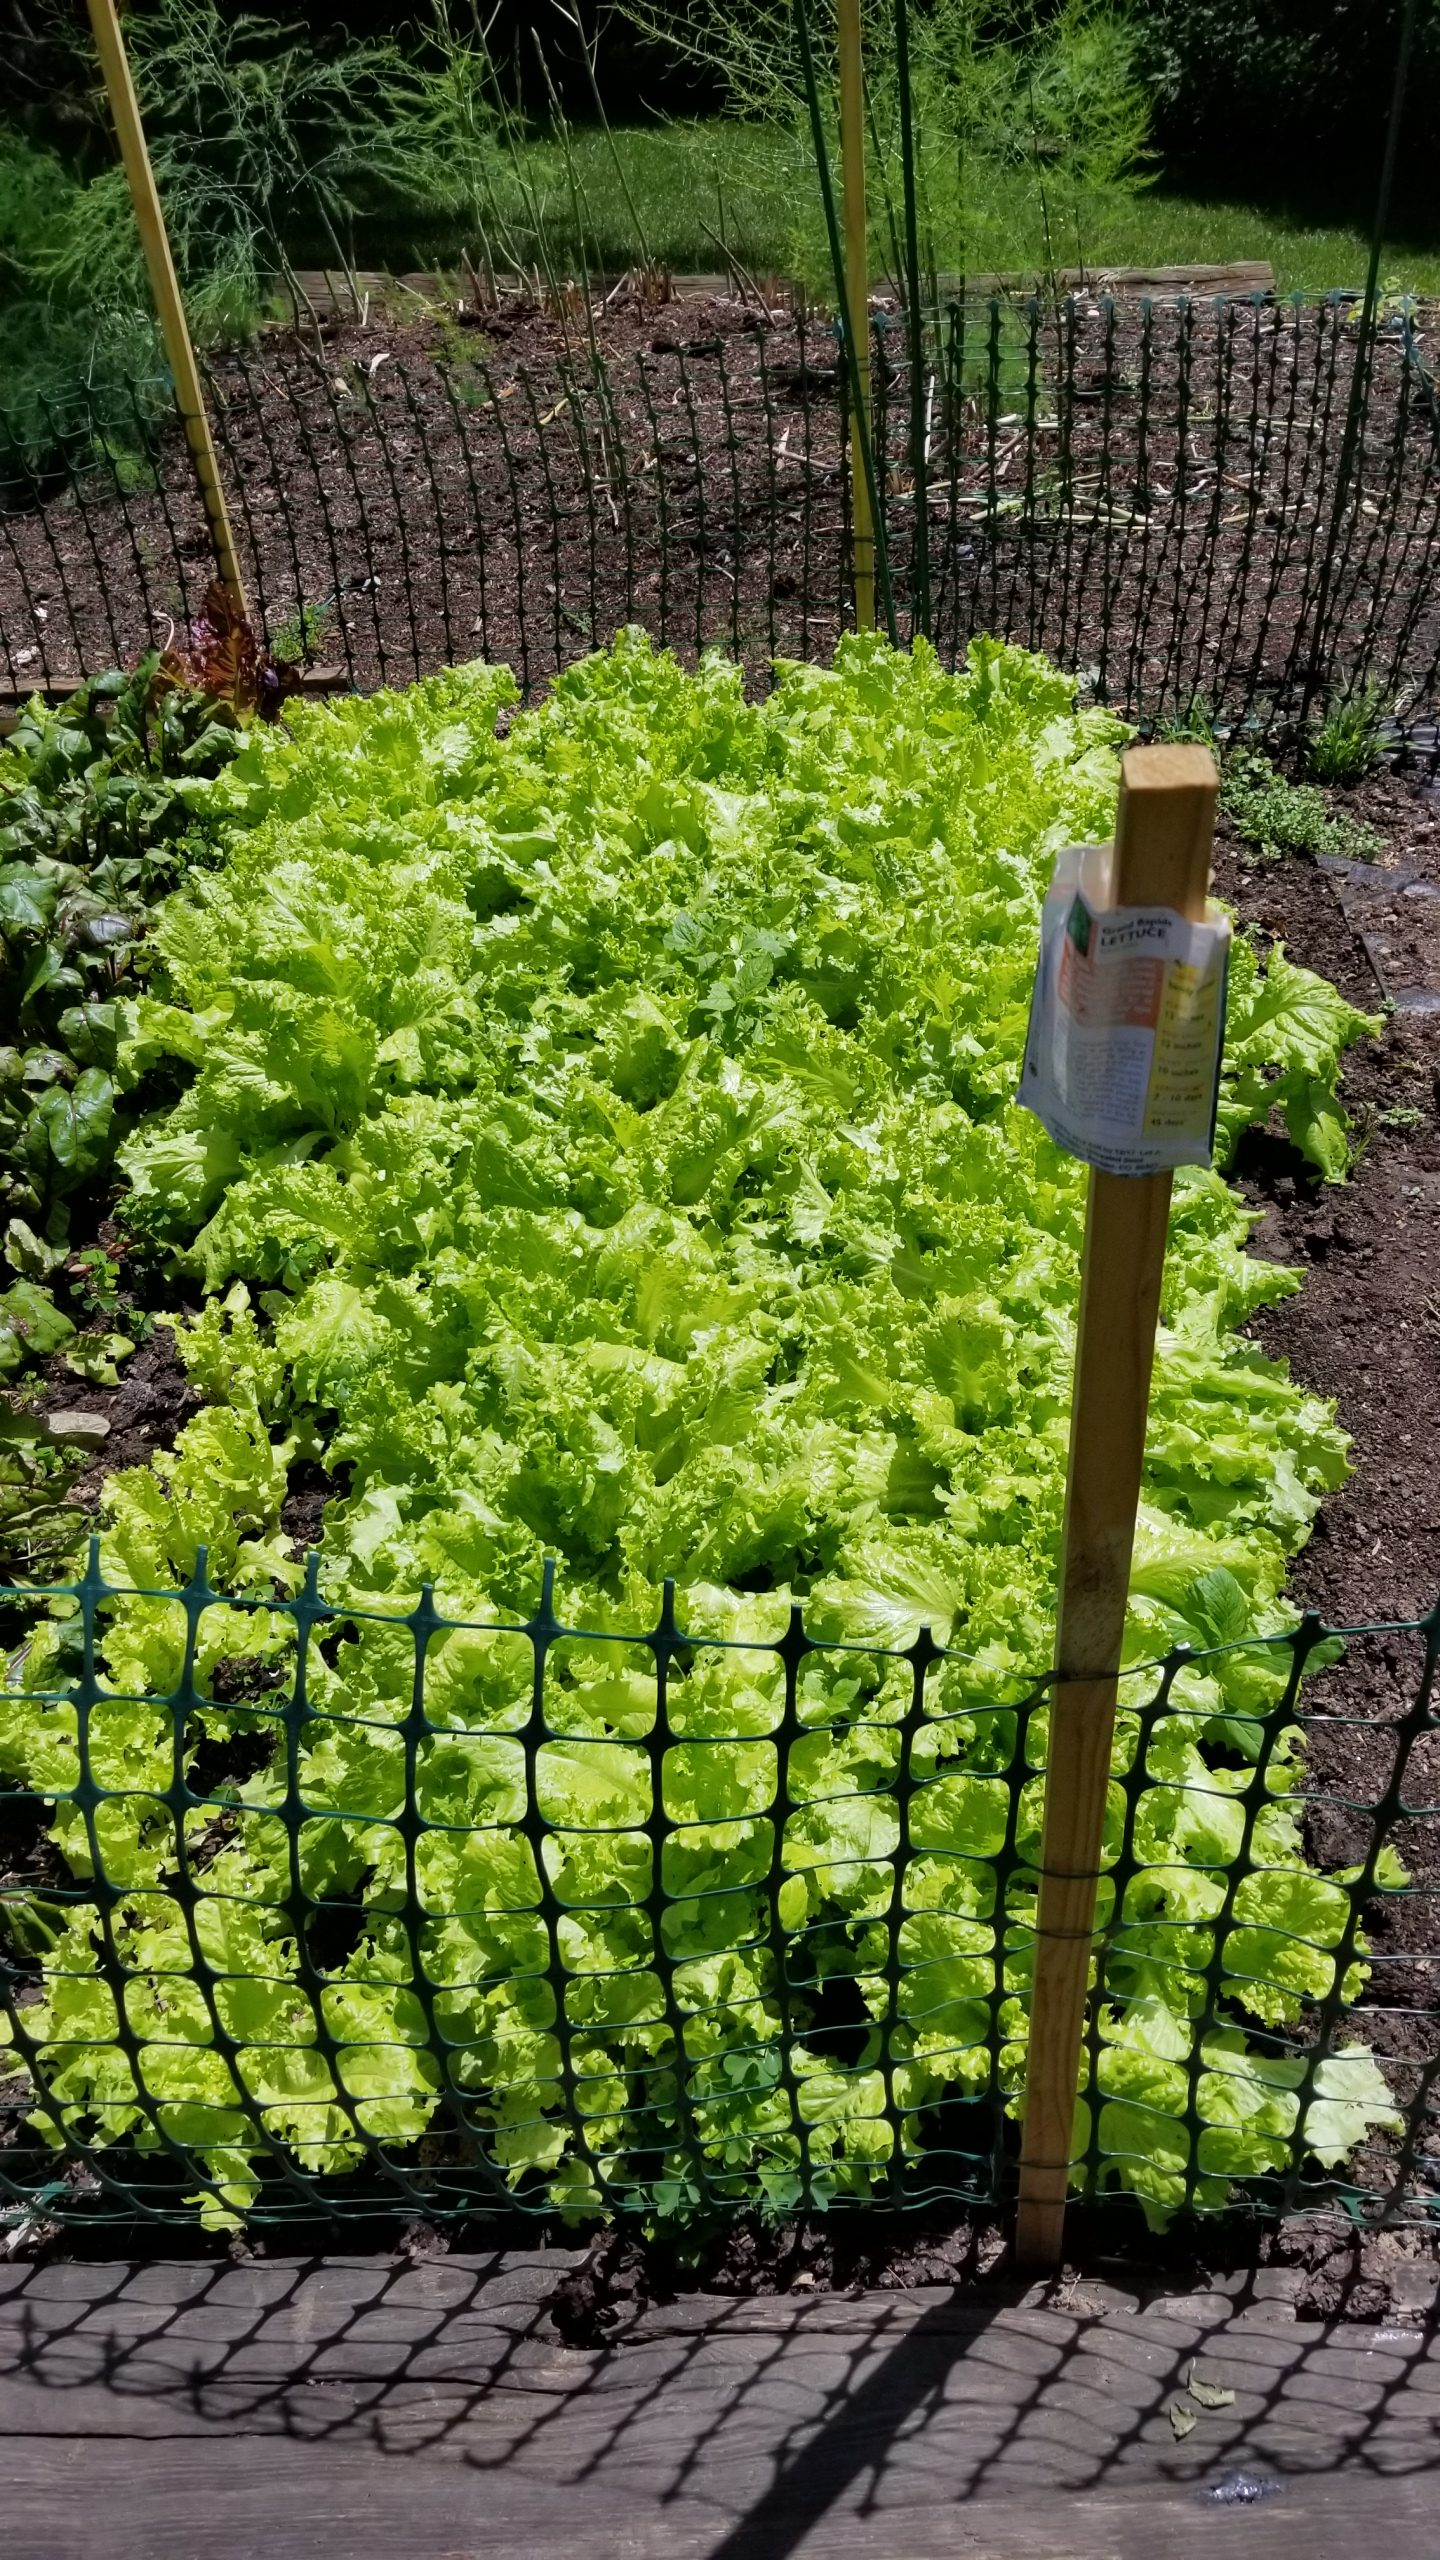 plentiful crop of grand rapid lettuce